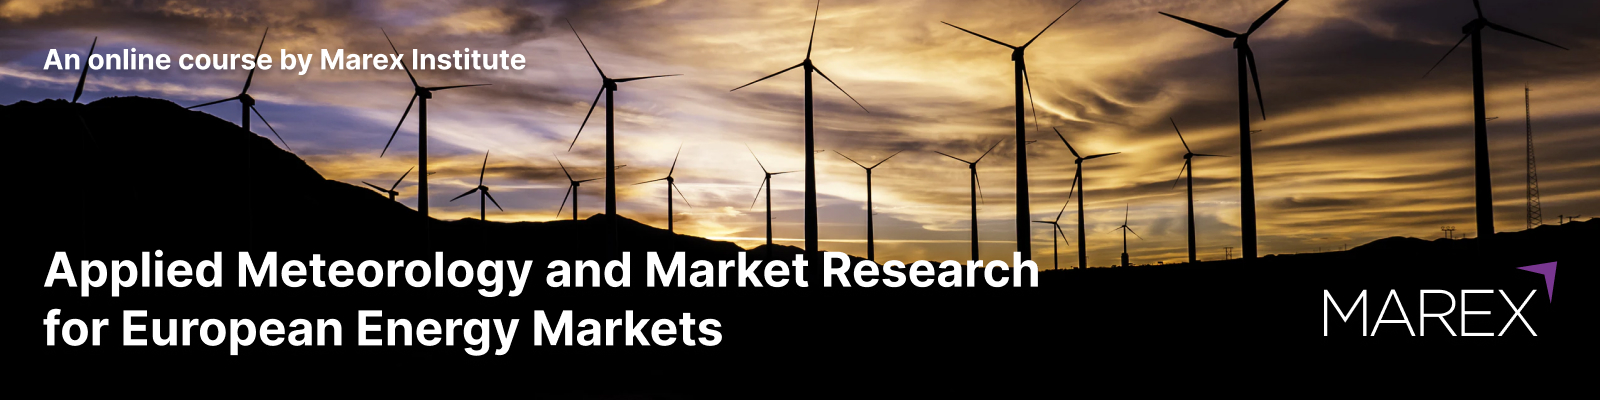 Applied Meteorology and Market Research for European Energy Markets, 27-28 May 2021